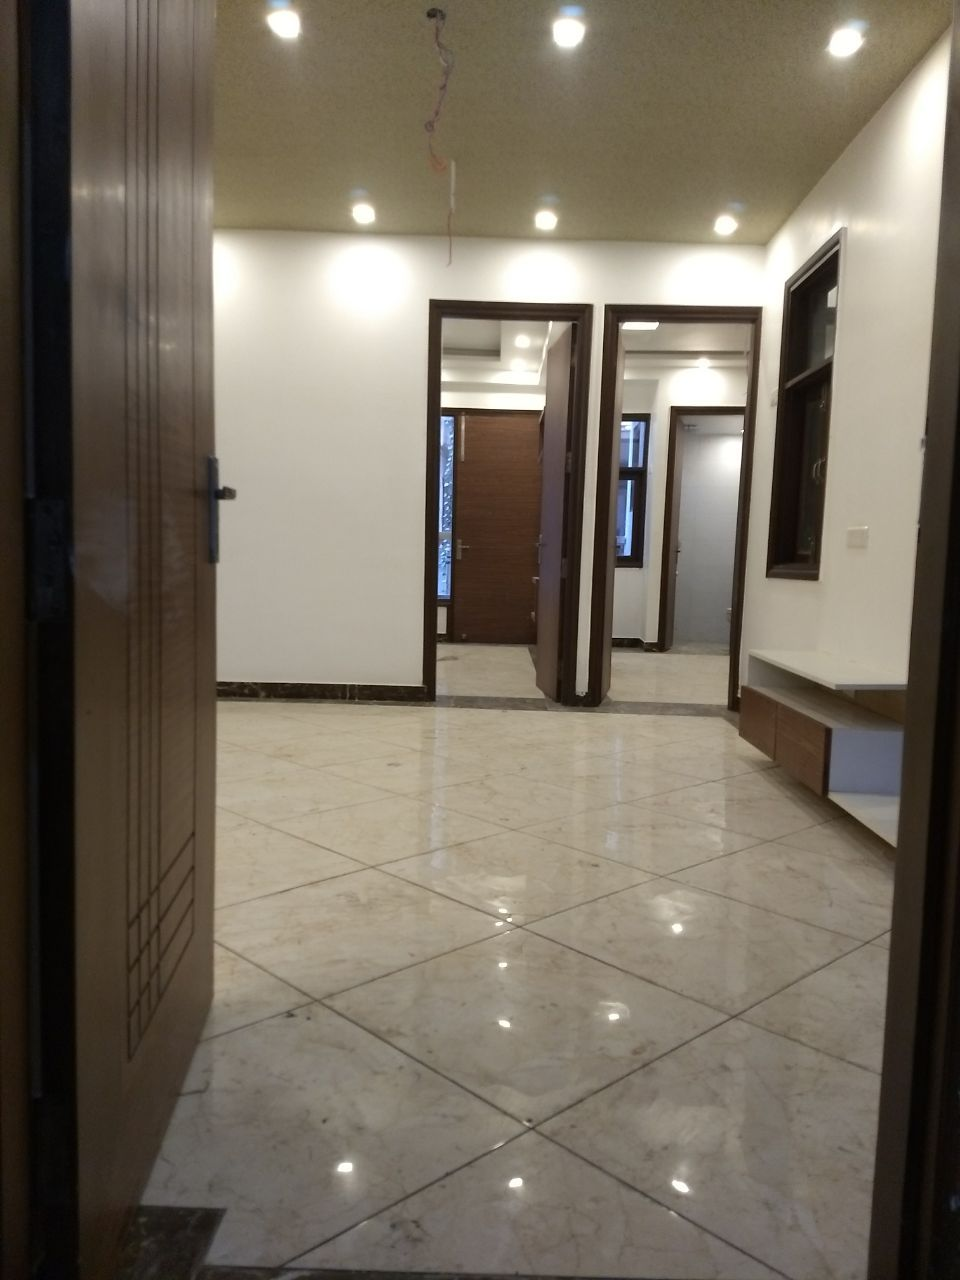 3 Bhk Flat In Mahavir Enclave Dwarka Near By Road And Mall Metro